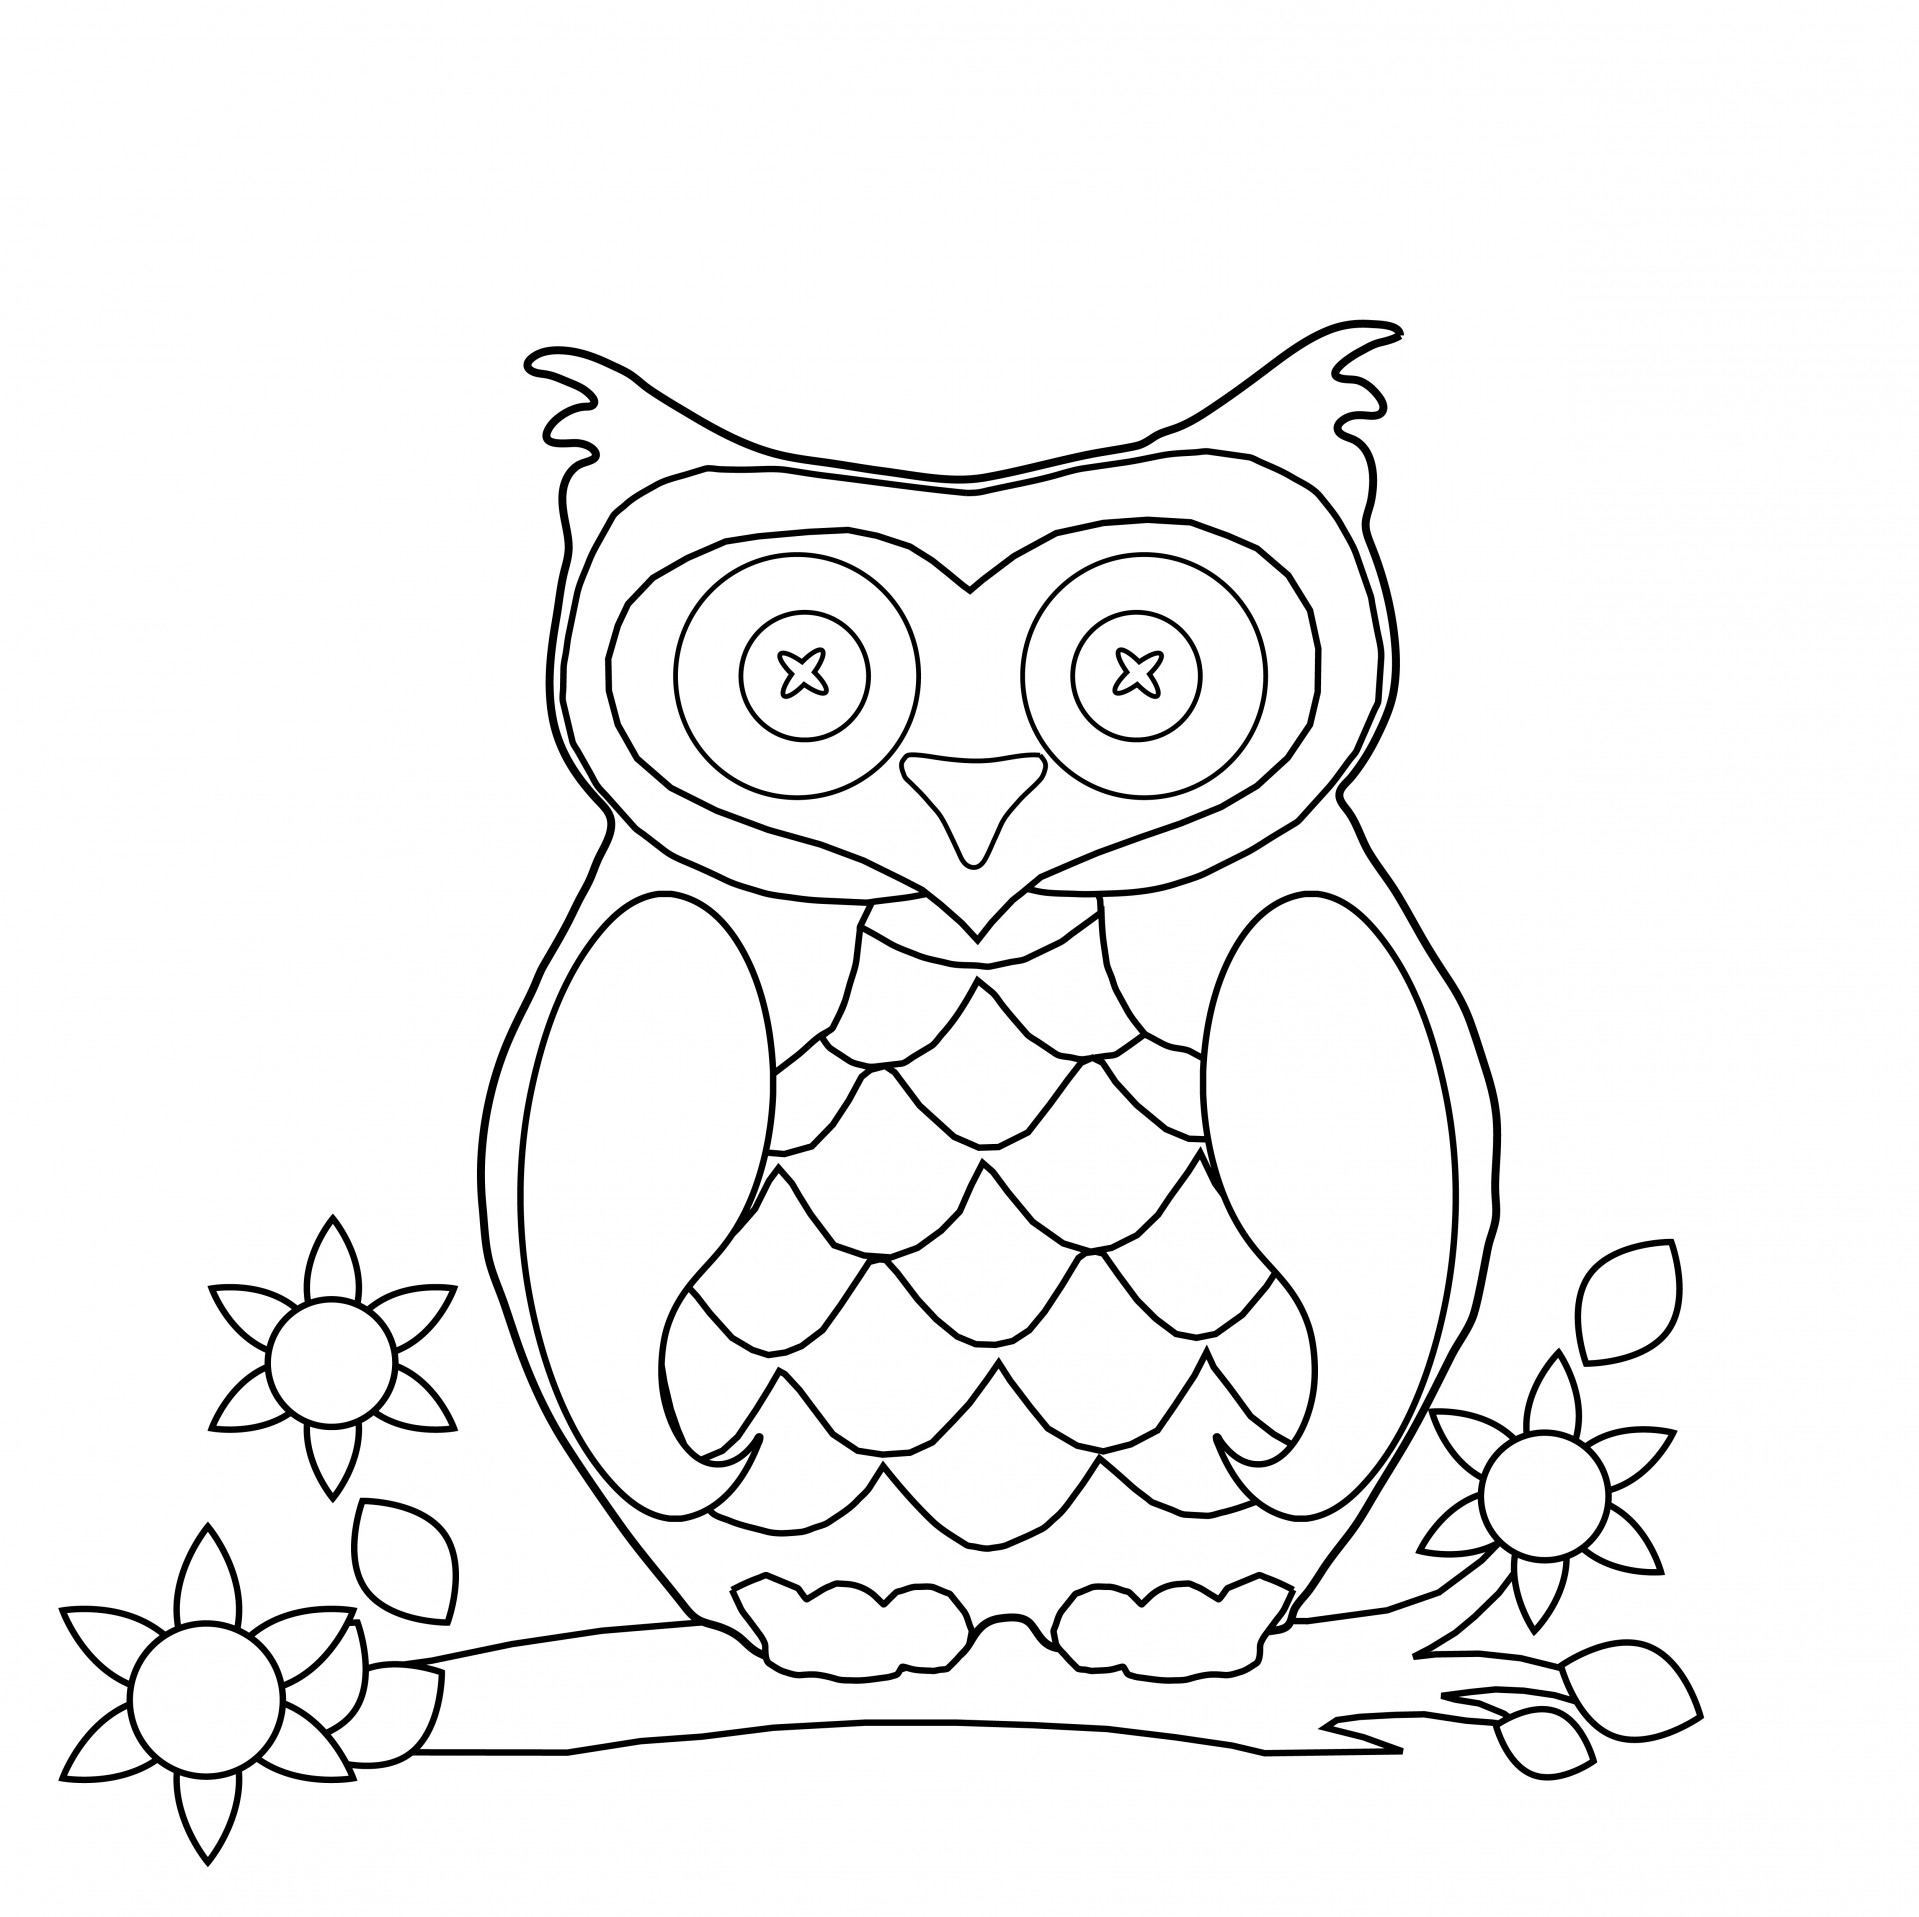 create a coloring page word coloring pages doodle art alley coloring create page a